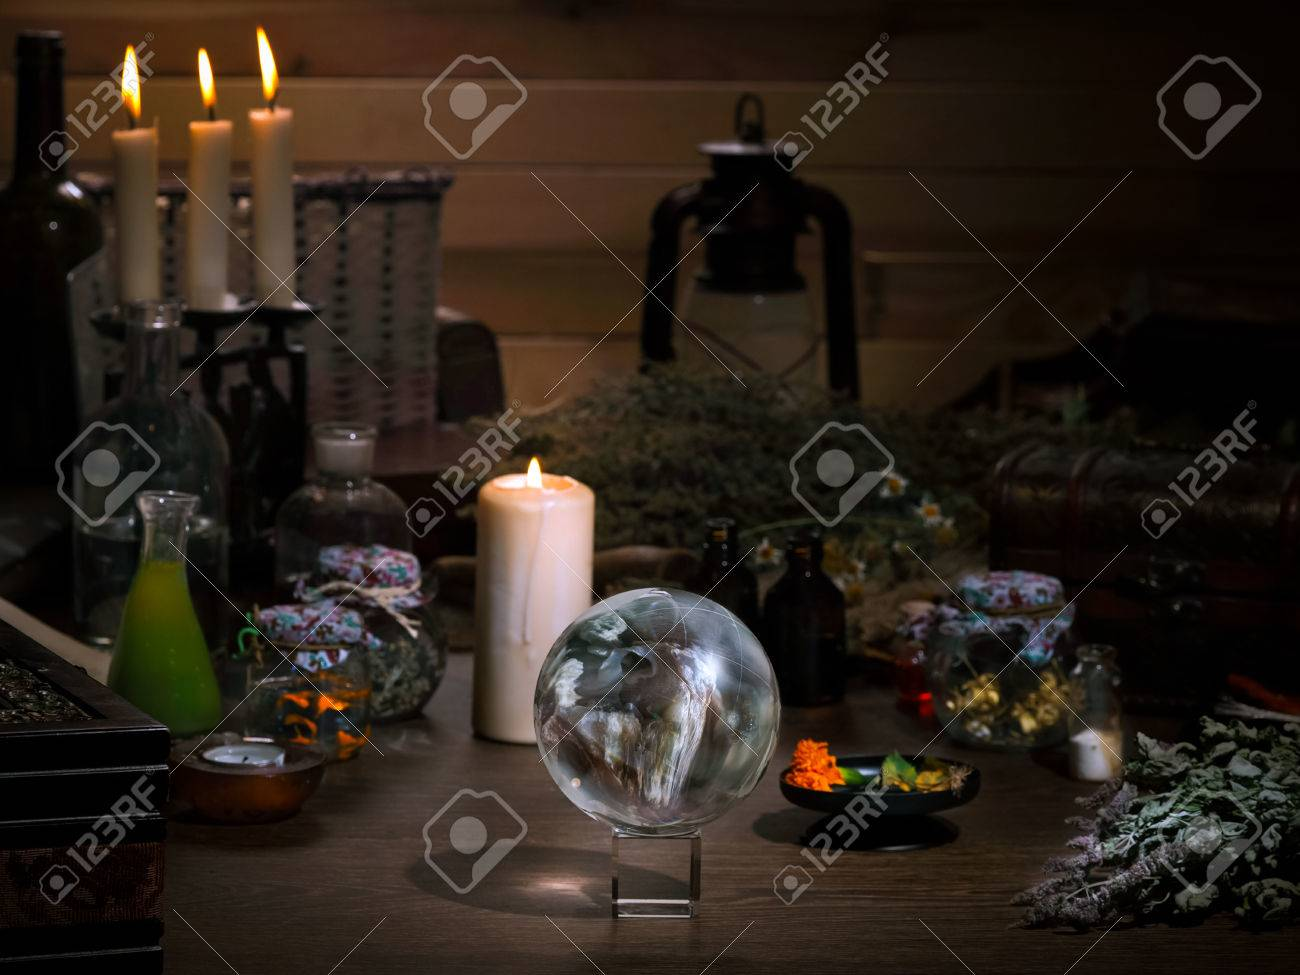 Mystical still life - the magic ball, candles, herbs. Many magic items and utensils alchemist. Concept - magic, witch board, alternative medicine, occult and witchcraft. Halloween - 61500371